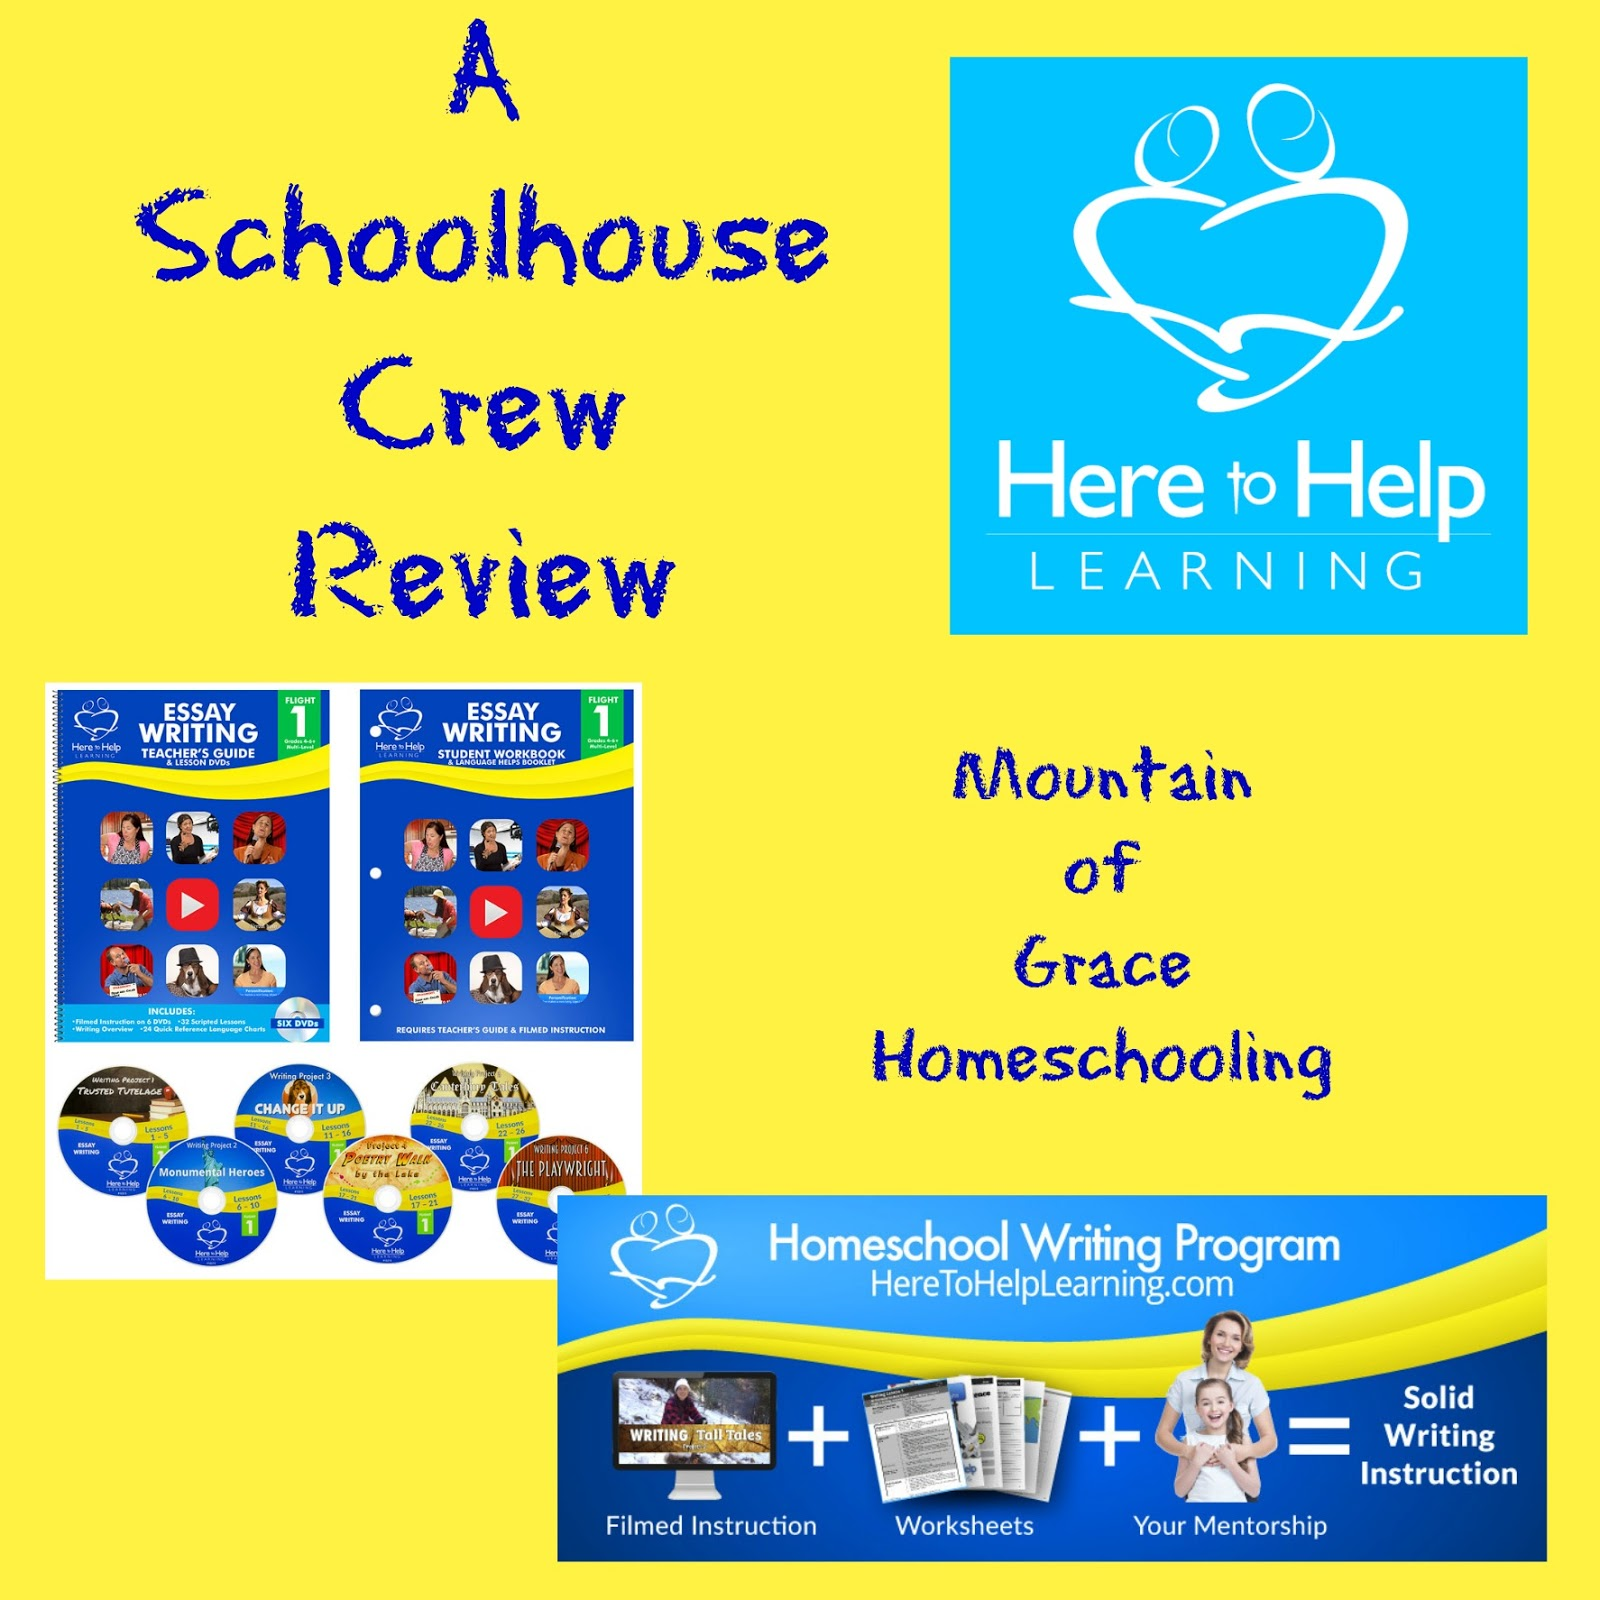 argumentative essay on homeschooling vs public schooling Public schools or homeschooling either public school or homeschooling obviously have the same curriculum the curriculum is certified and controlled by the government in this essay.